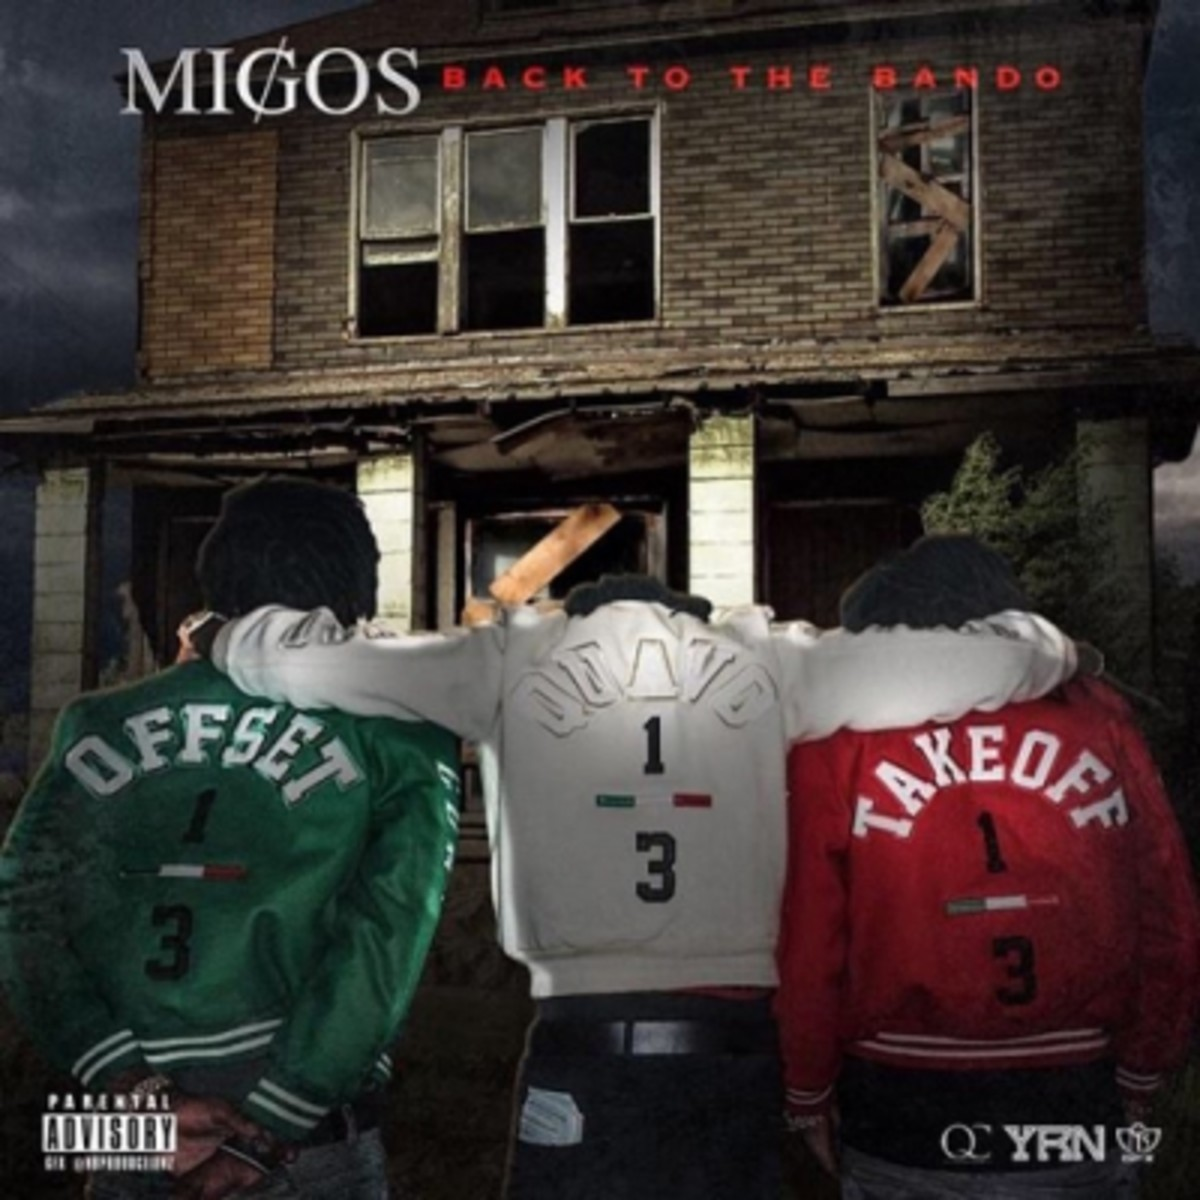 migos-back-to-the-bando.jpg